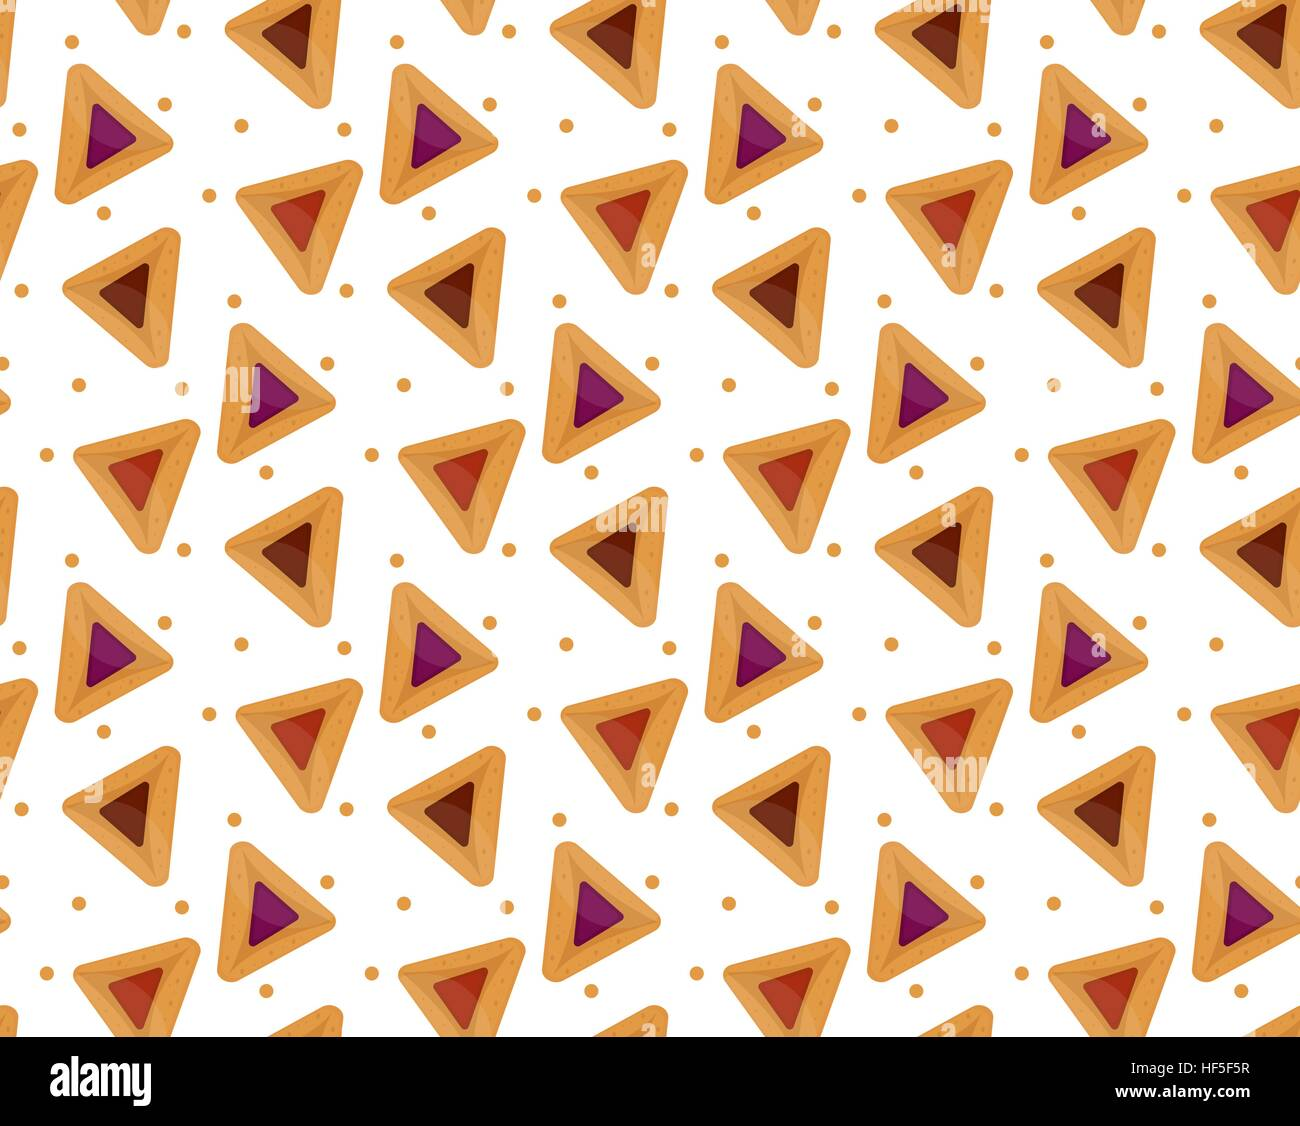 Purim hamantaschen seamless pattern. Jewish traditional dish on the holiday of . endless background, texture, wallpaper. - Stock Image